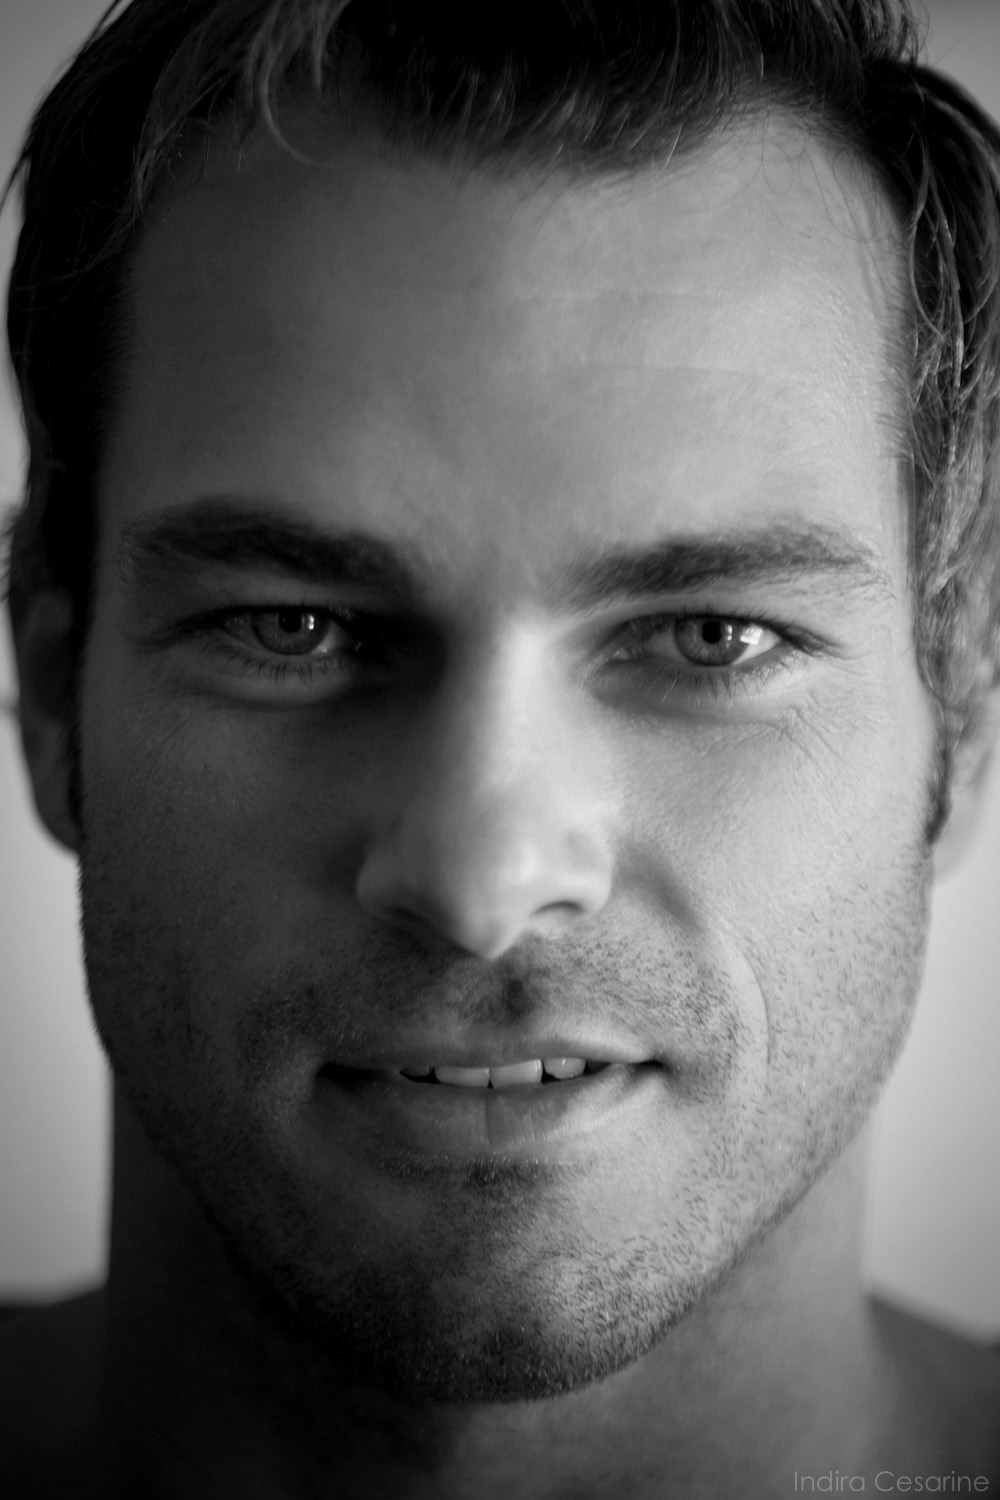 Shawn-Roberts-Photography-by-Indira-Cesarine-007bw.jpg